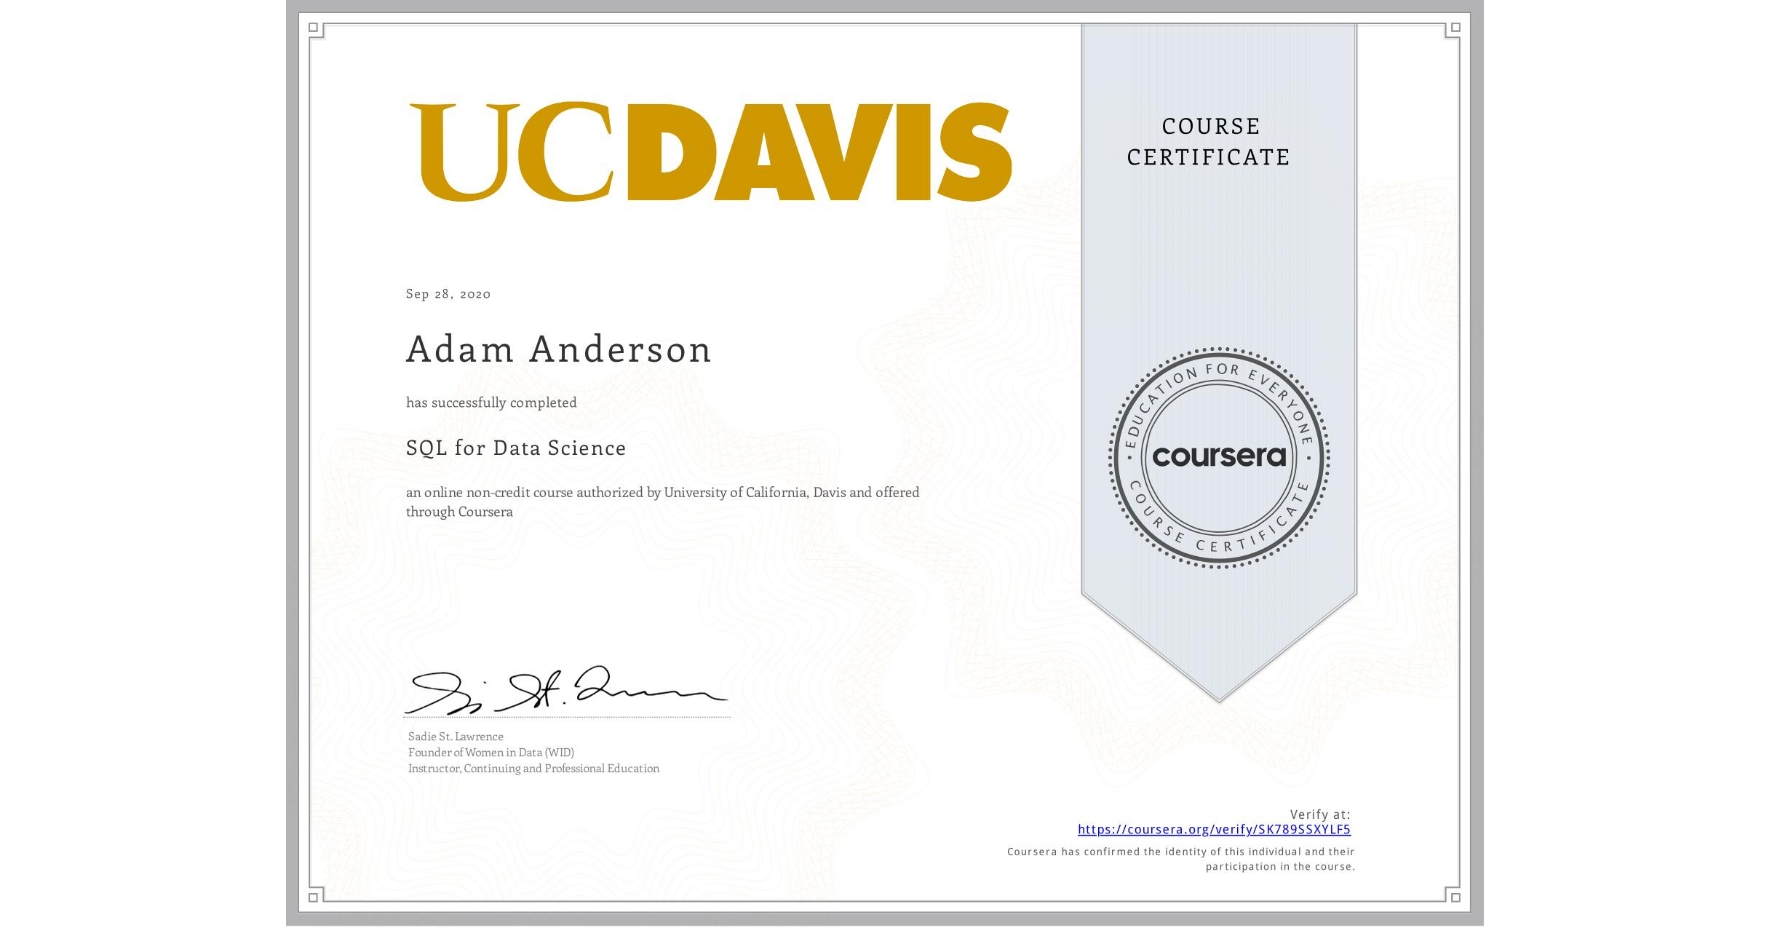 View certificate for Adam Anderson, SQL for Data Science, an online non-credit course authorized by University of California, Davis and offered through Coursera